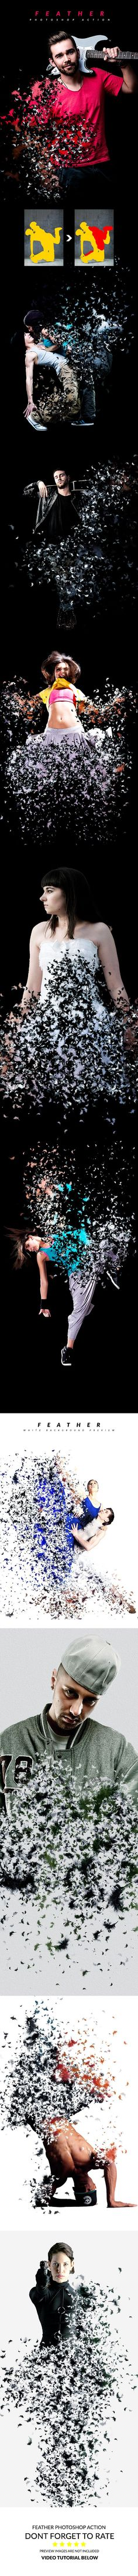 Feather Photoshop Action - Photo Effects Actions